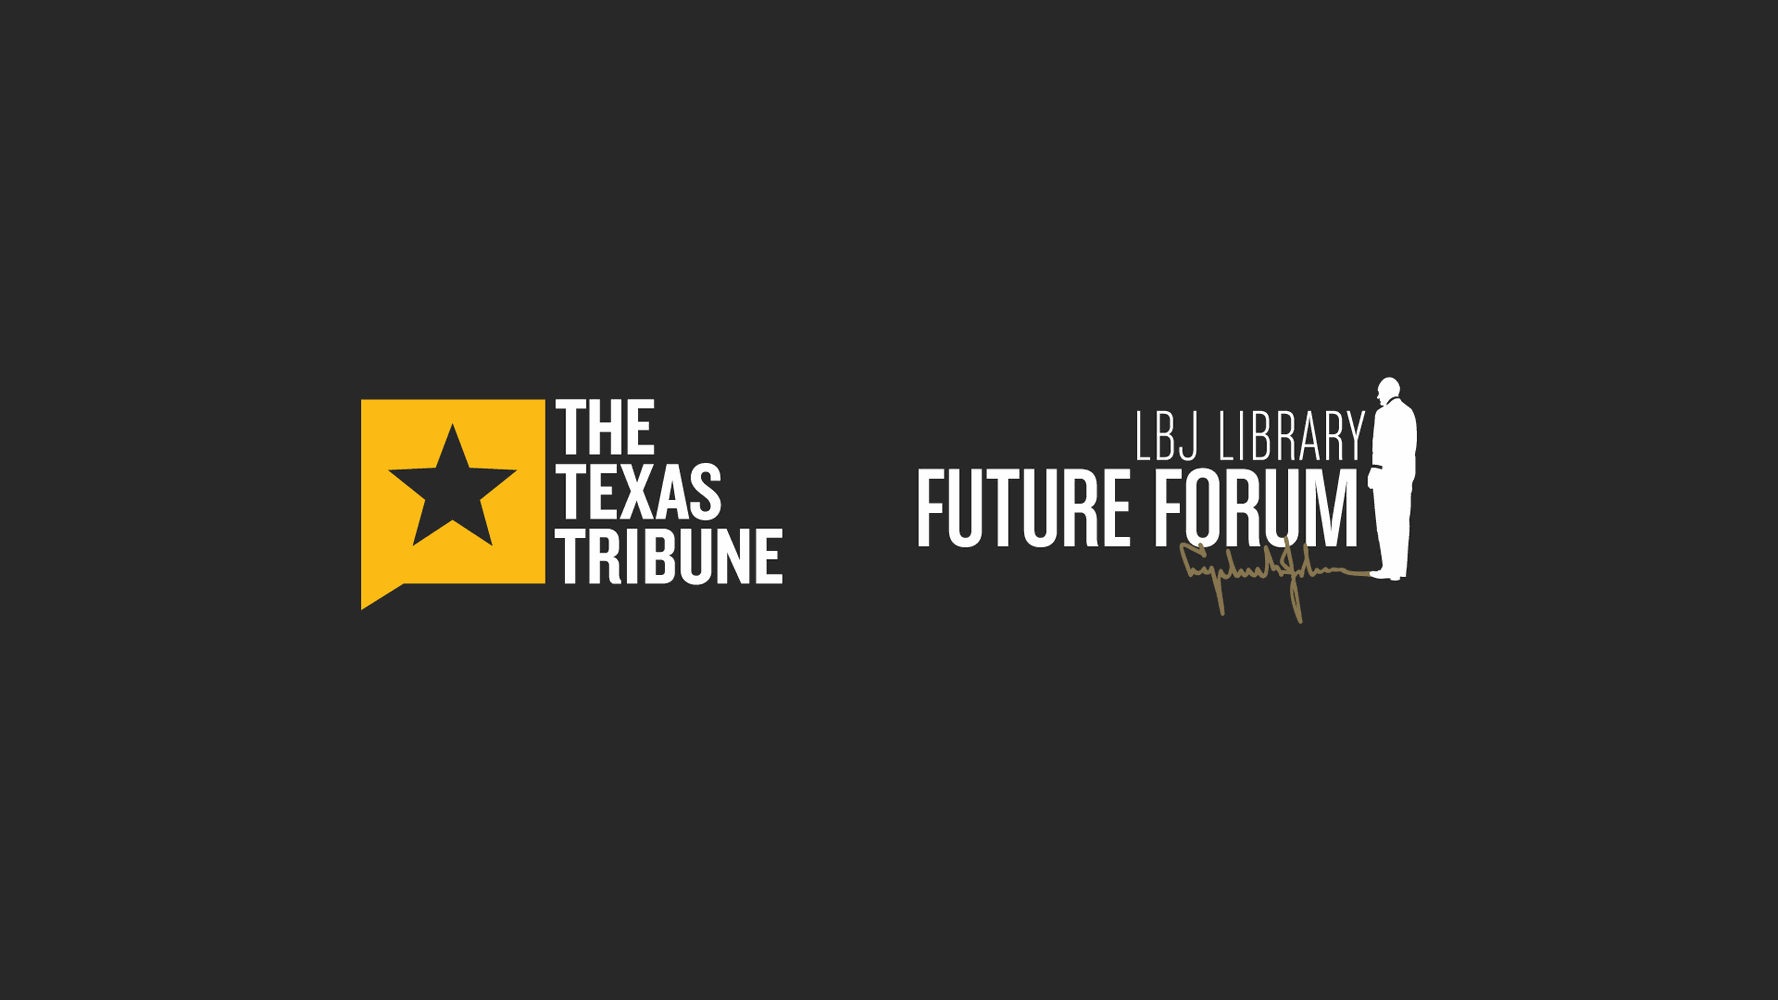 We're livestreaming our conversation with the LBJ Future Forum in Austin on the historic mobilization of women running for office.